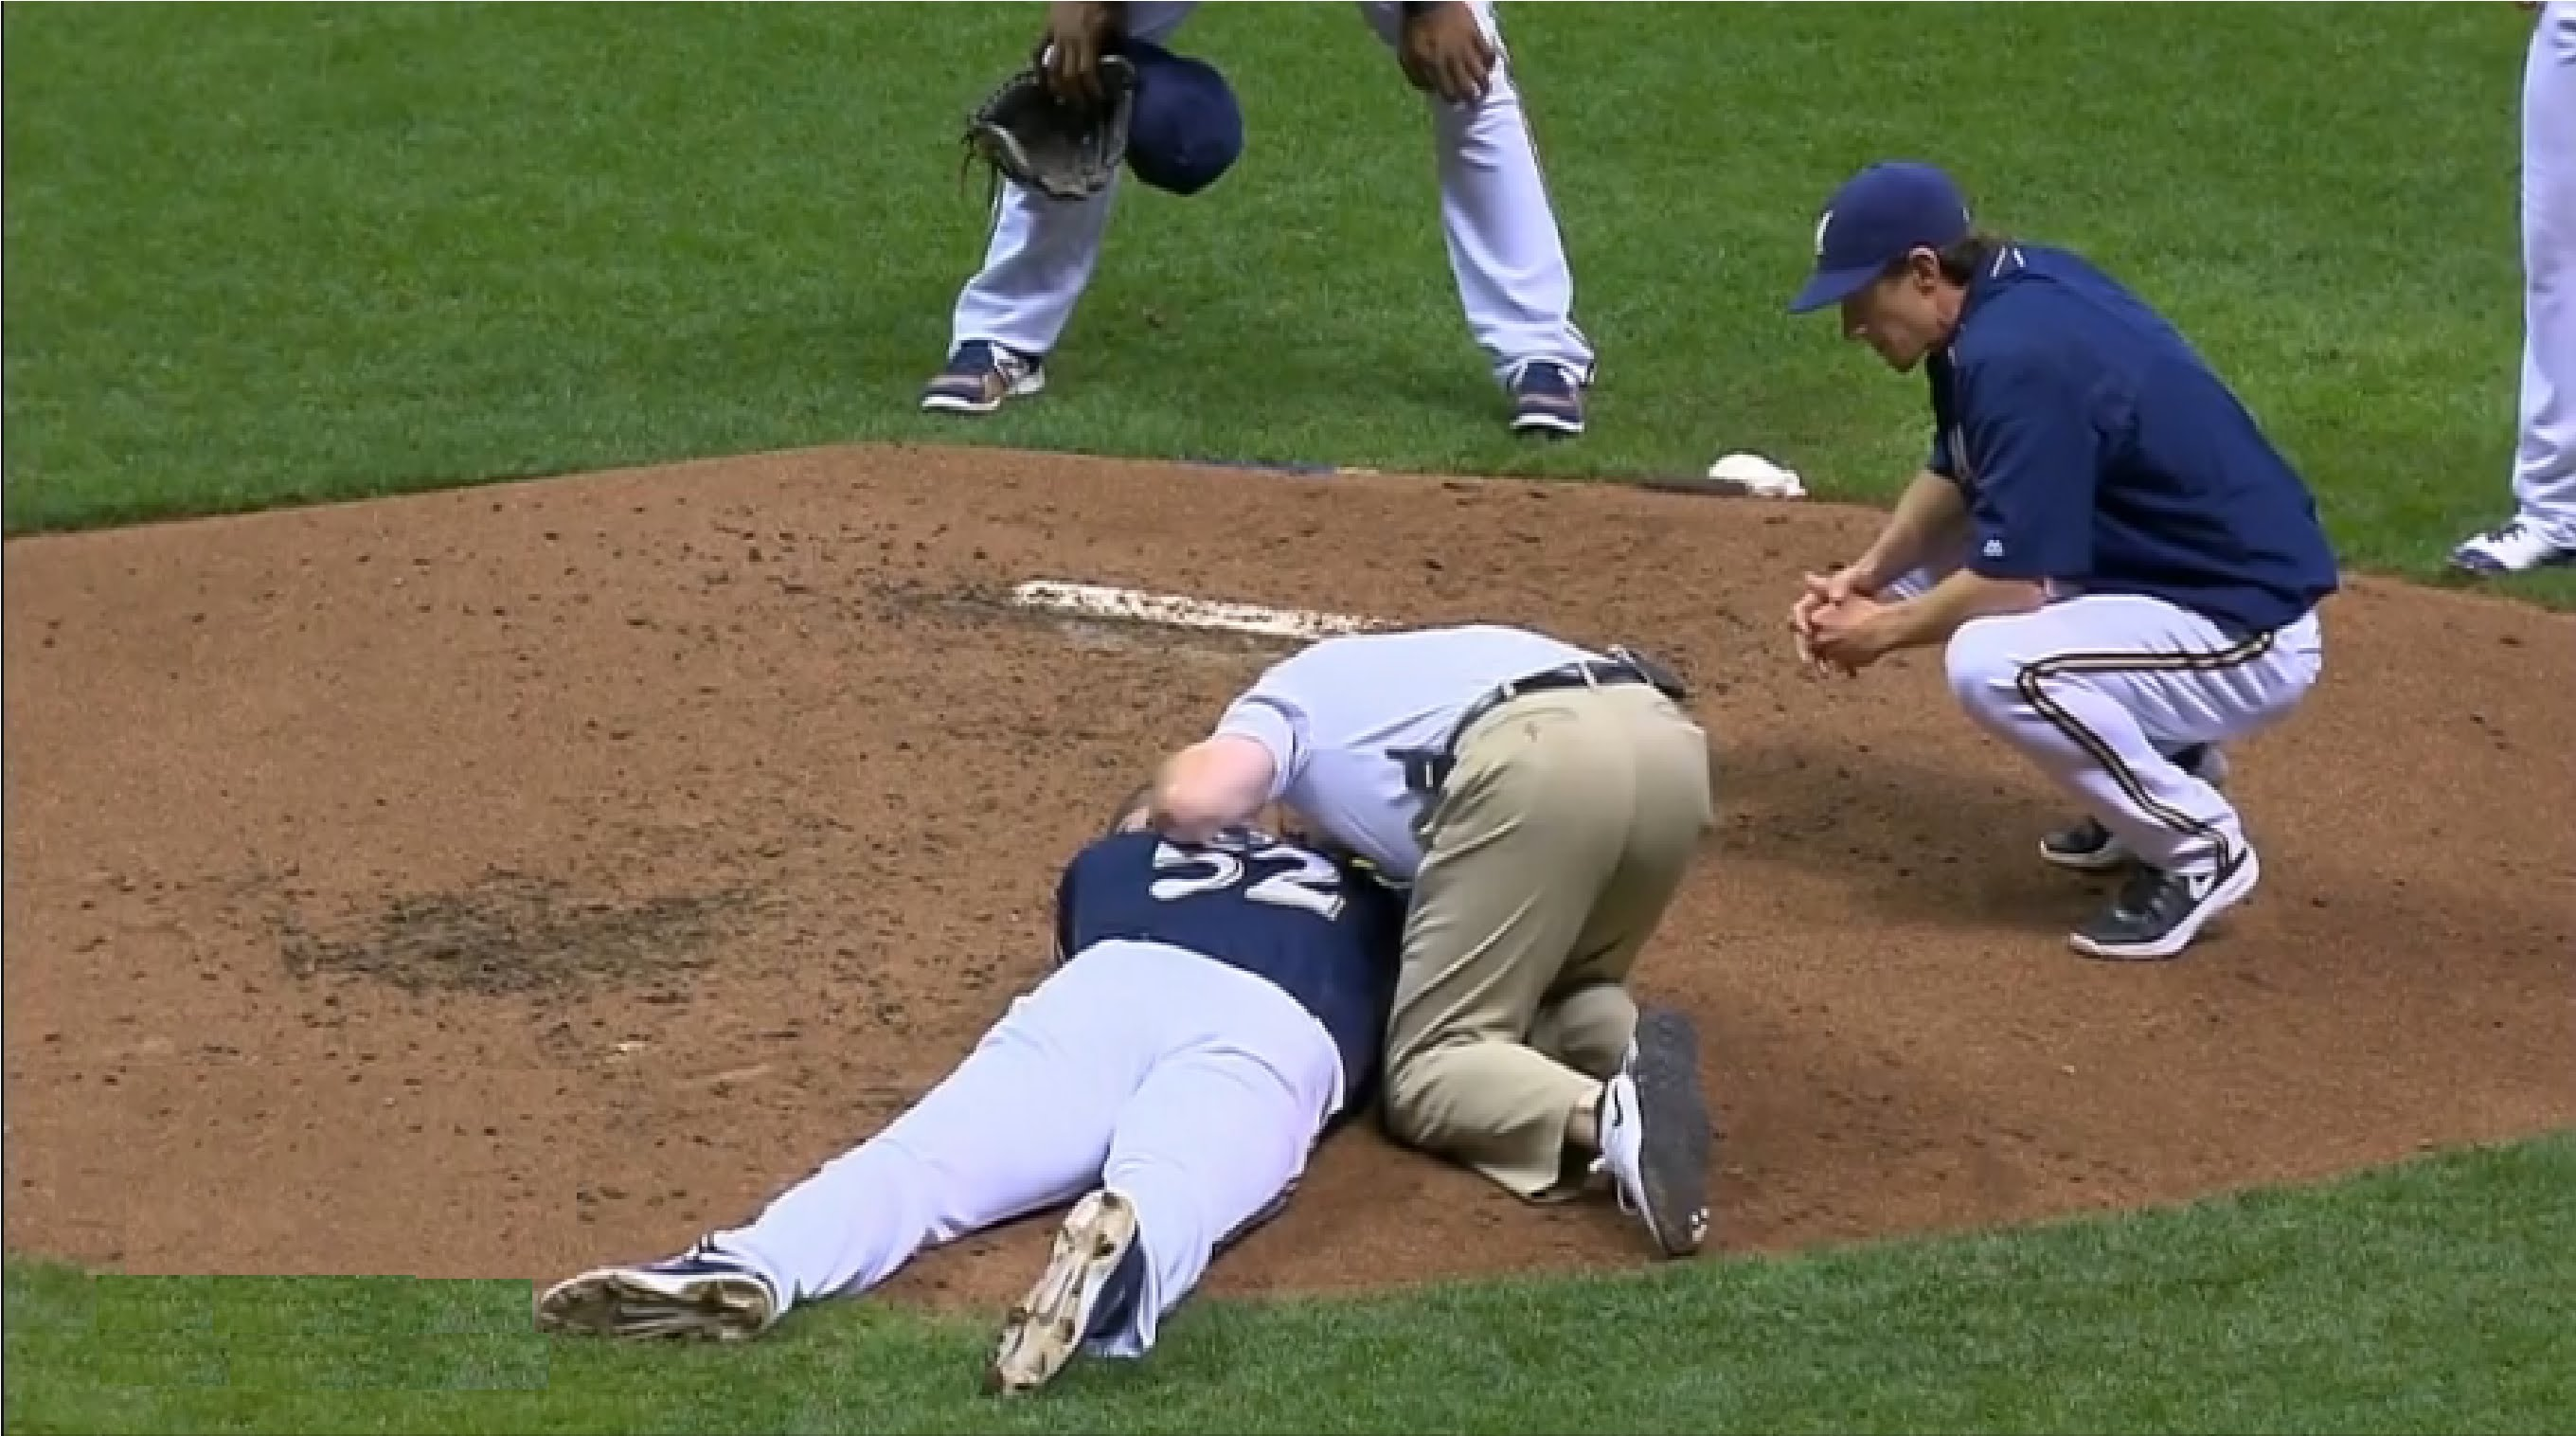 Brewers pitcher Jimmy Nelson pelted with a line drive to the head